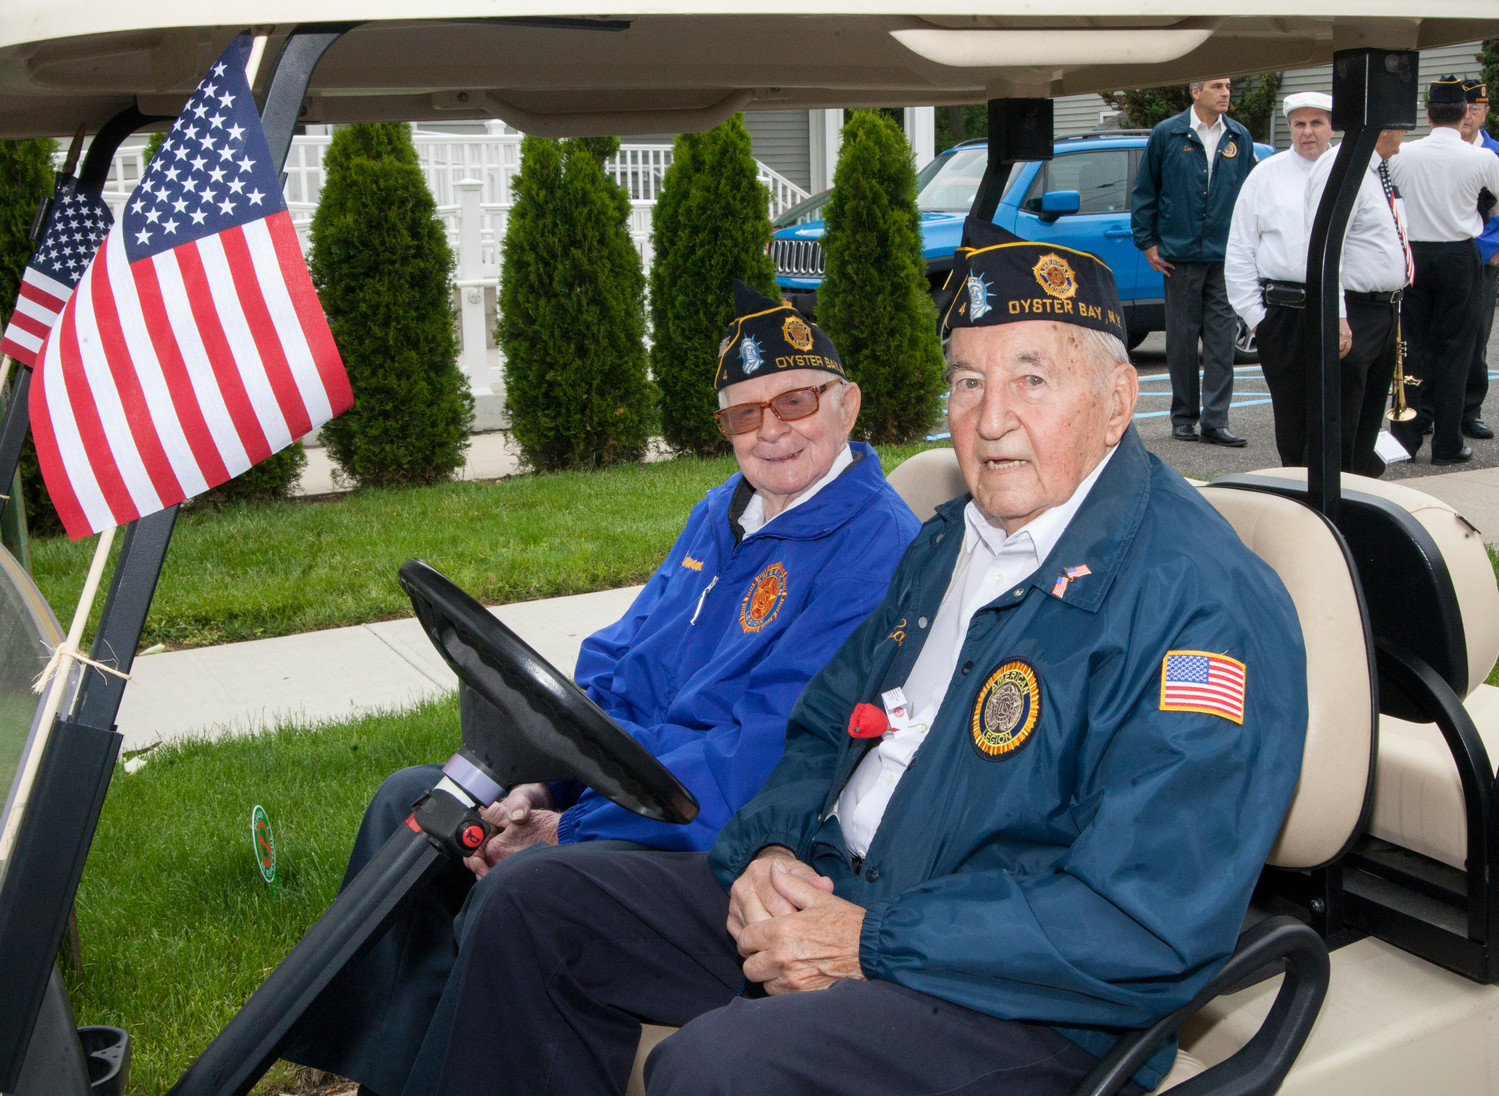 Herman Sonnernorm, left, and Edward Butt from Oyster Bay's VFW, lead the Memorial Day Parade.